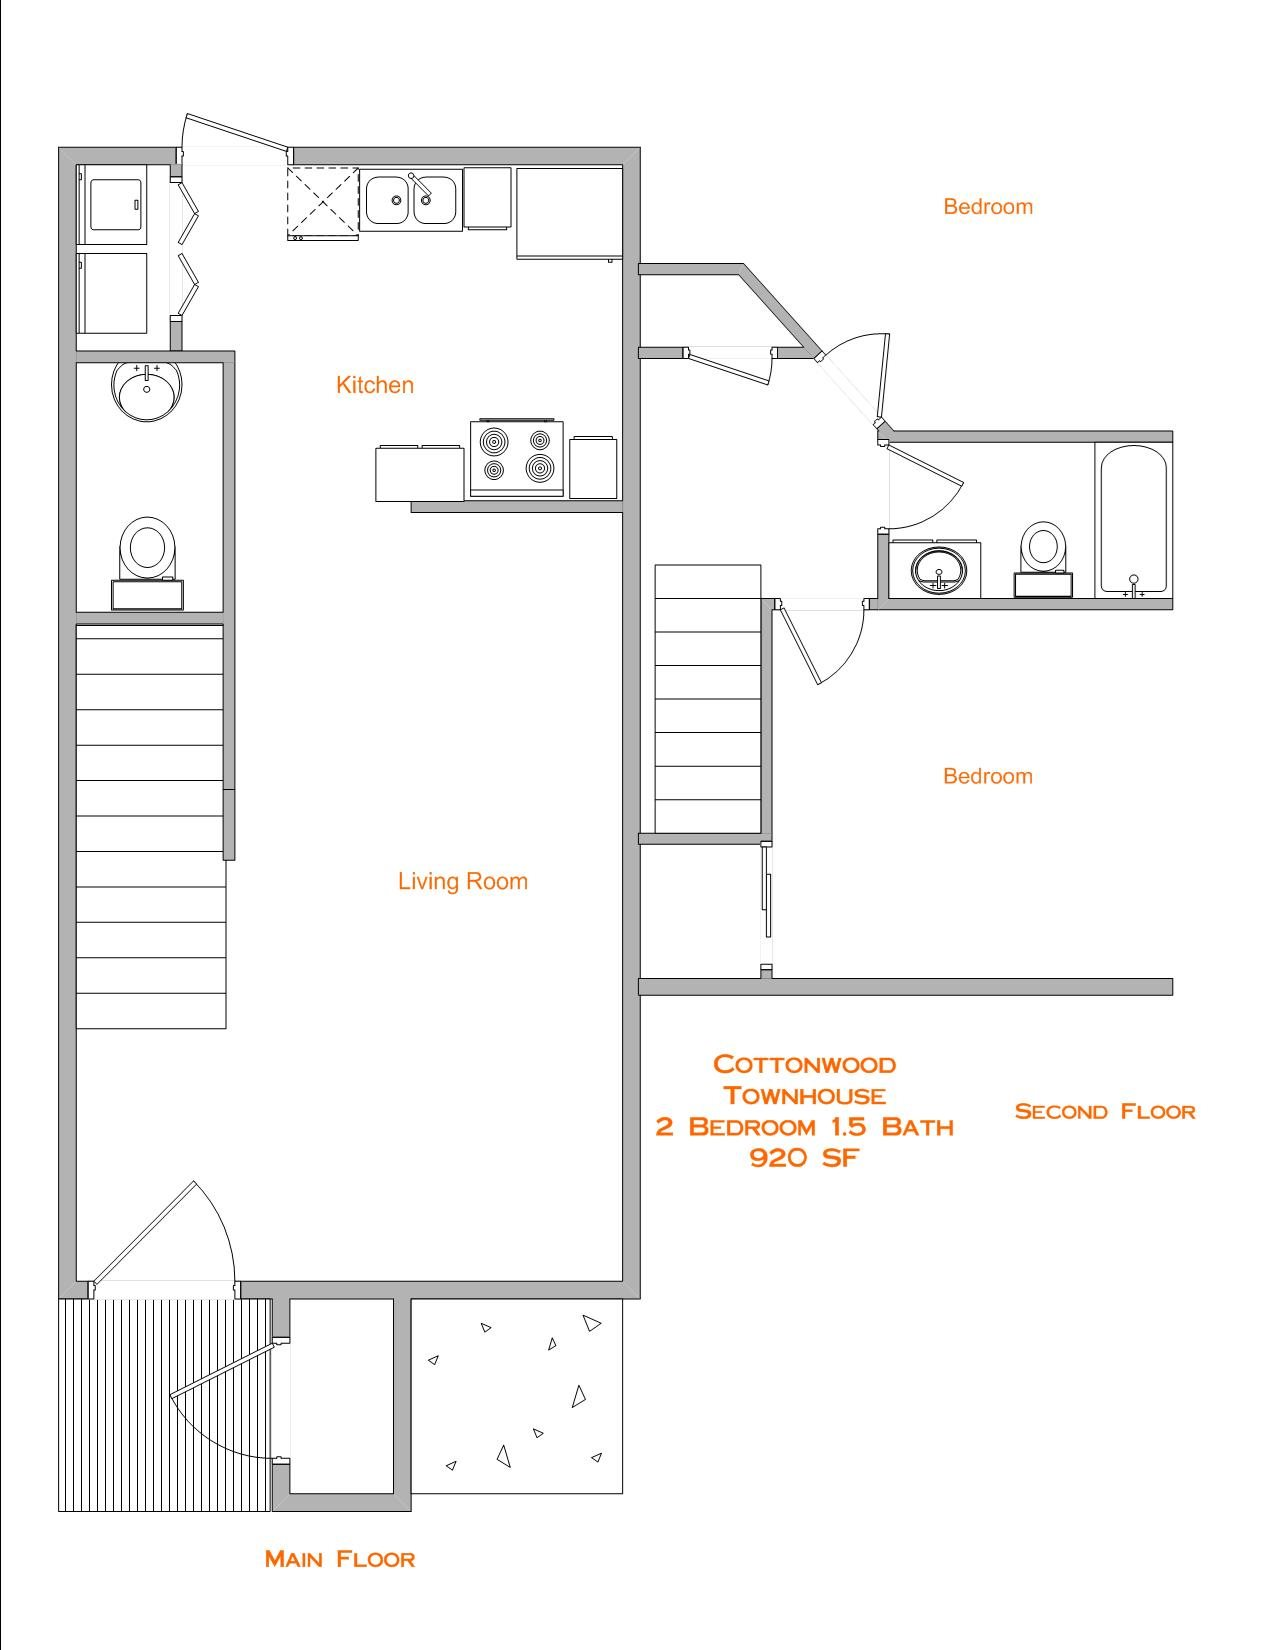 2 Bedroom, 1.5 Bath Floor Plan 2